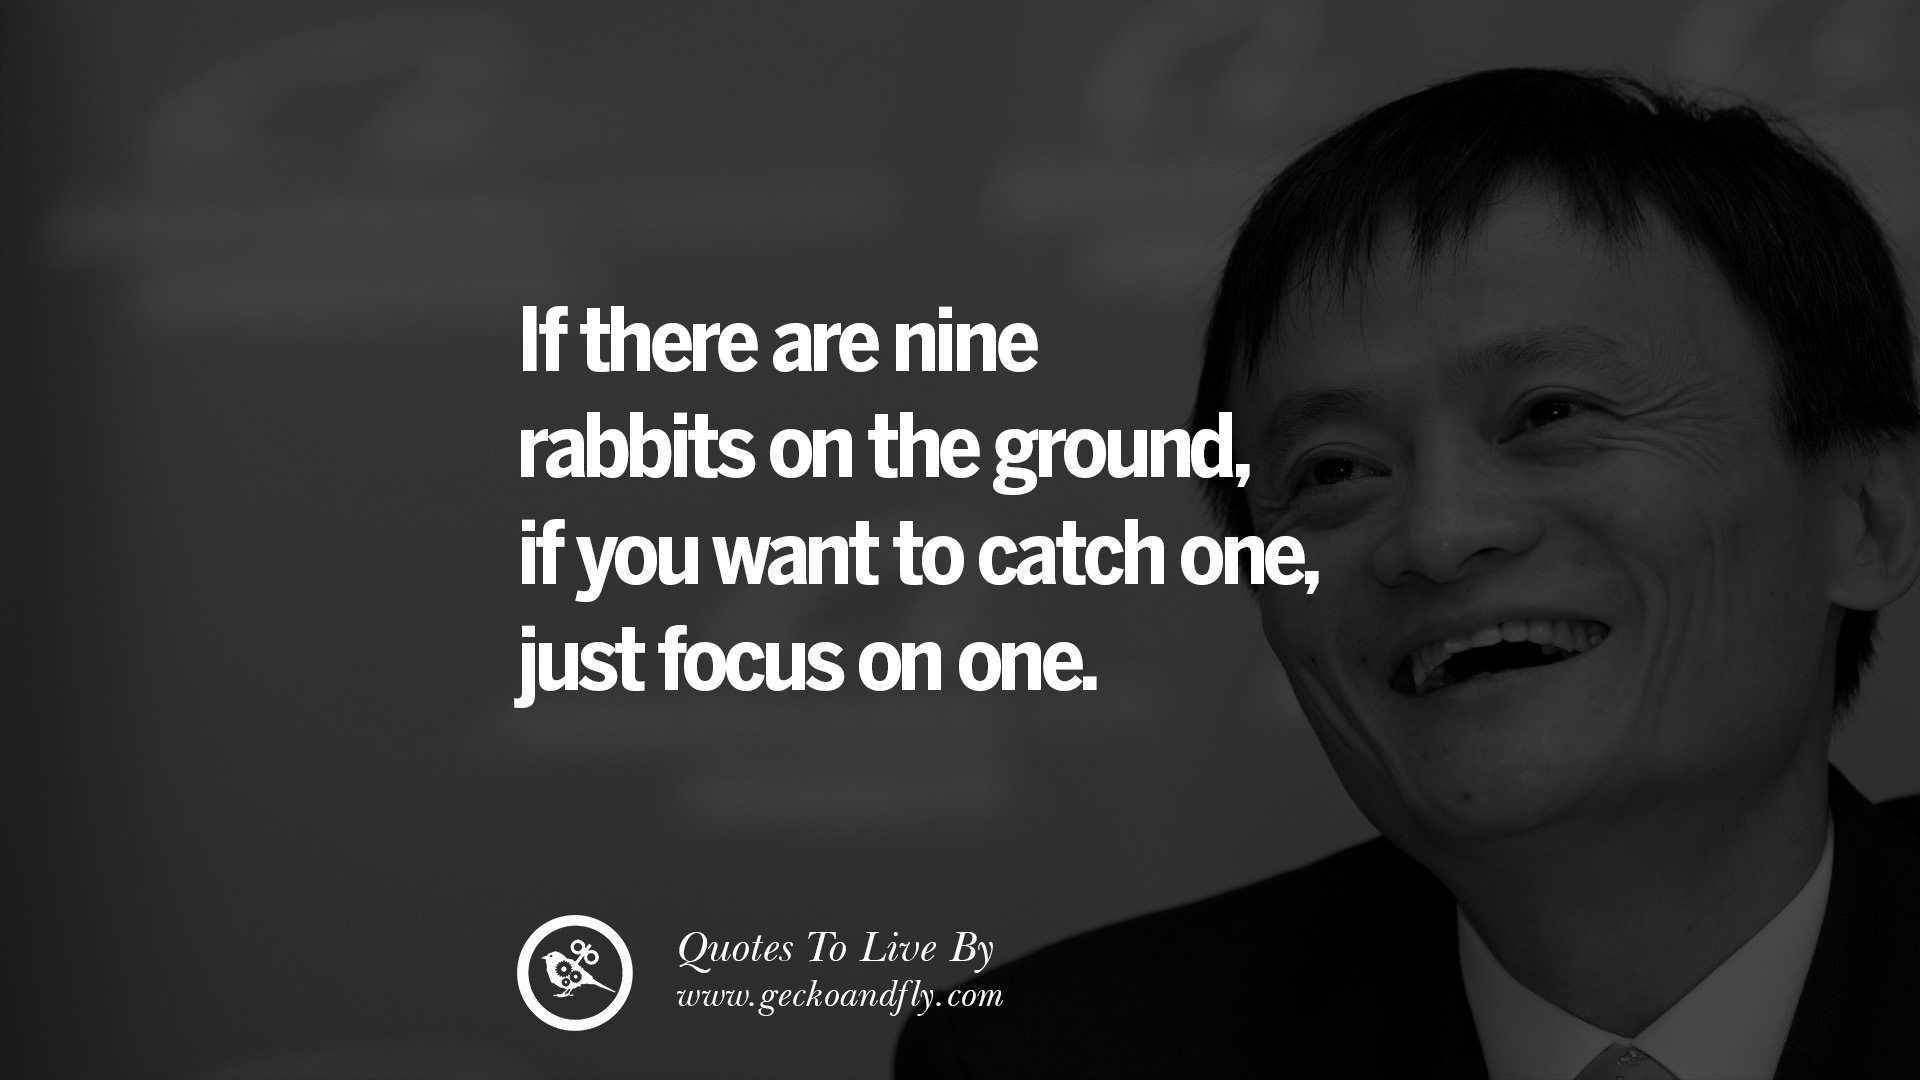 Jack Ma Quotes in addition The Ultimate Travel Quotes As Chosen By You in addition Quotes About Life Love And Happiness Friendship in addition 4 together with The Power Of Presence A Few Simple Ways To Enjoy Life More Now. on change is good quotes